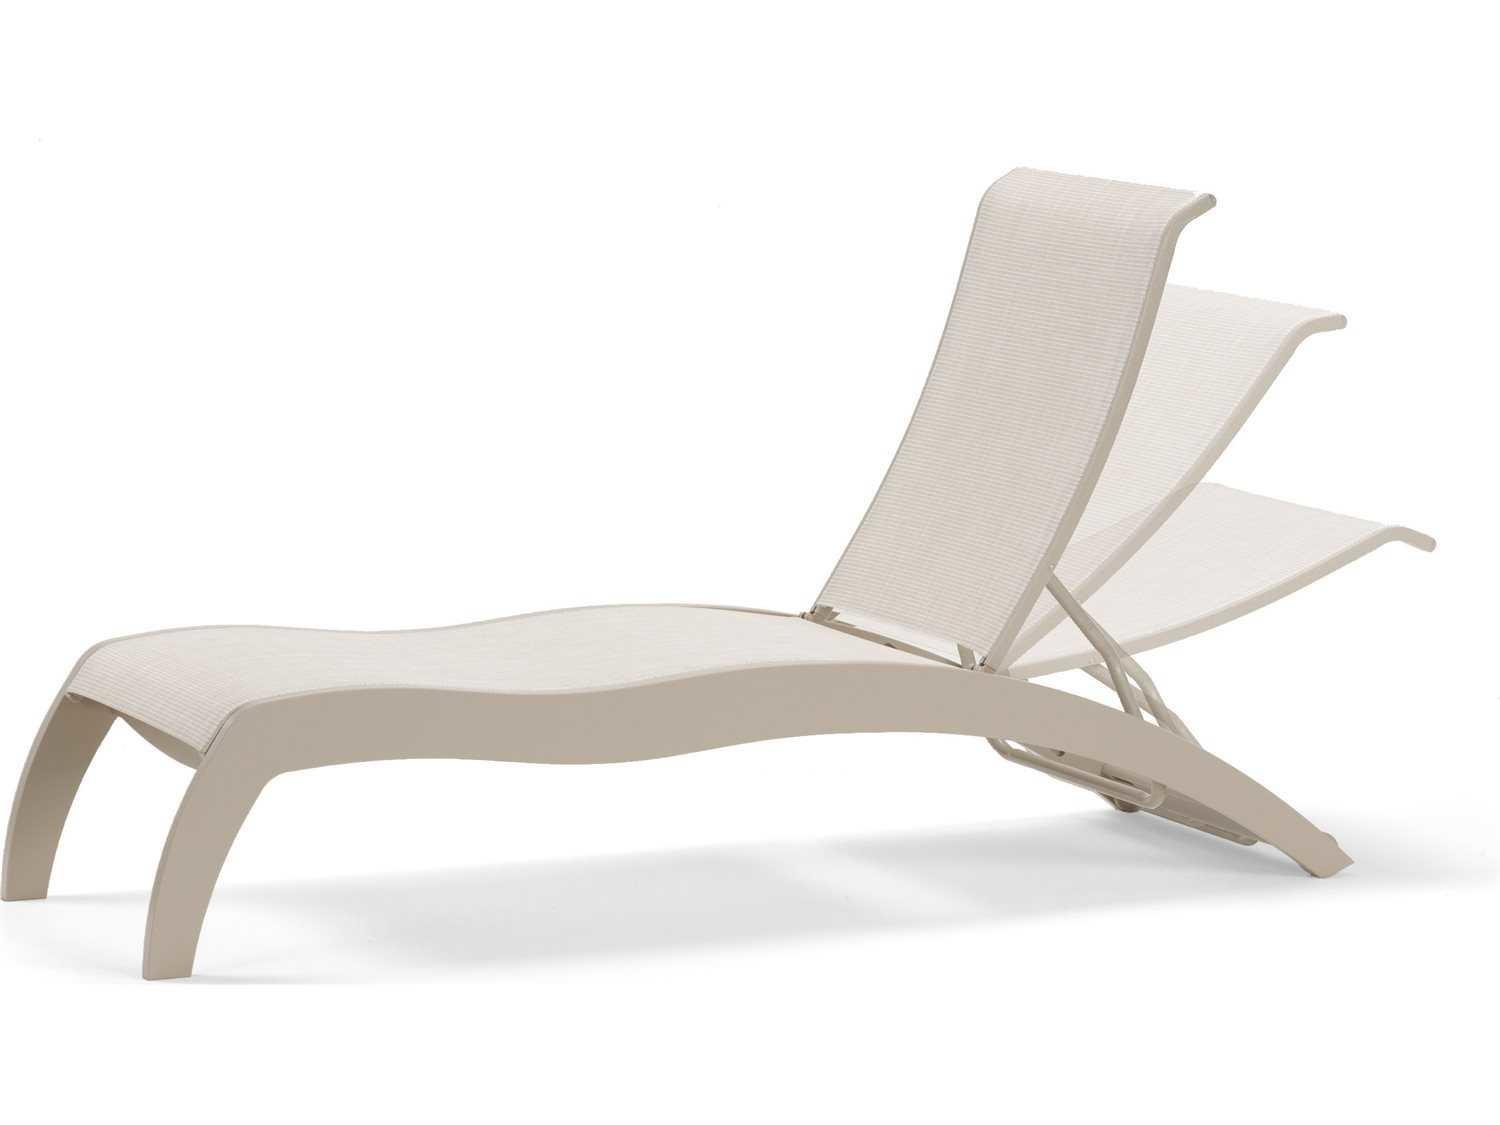 Telescope Casual Dune Mgp Sling Recycled Plastic Chaise